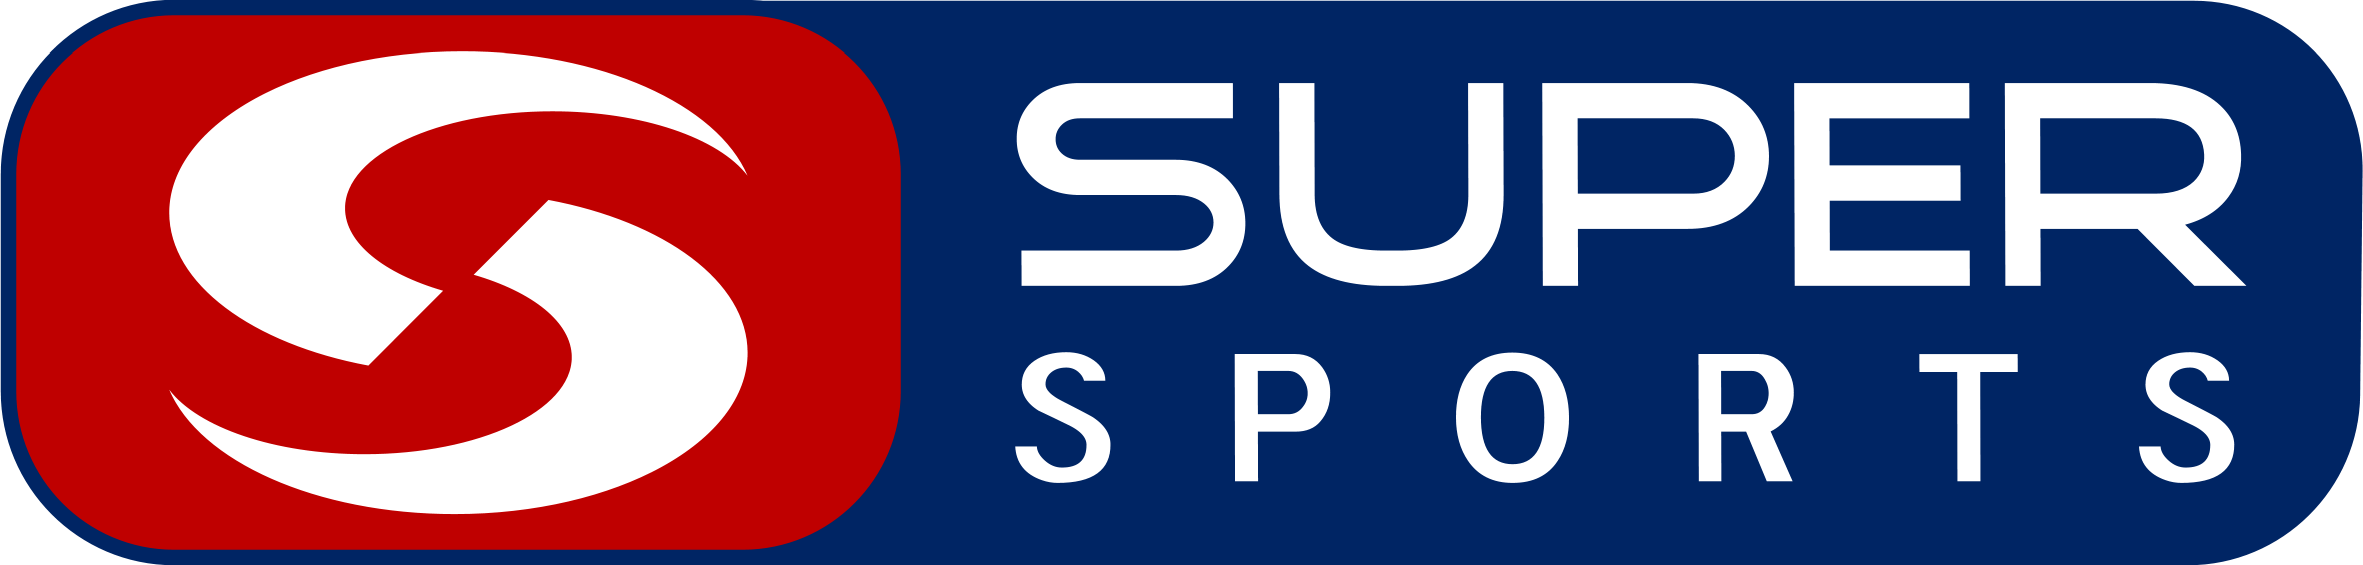 Super Sports UAE logo